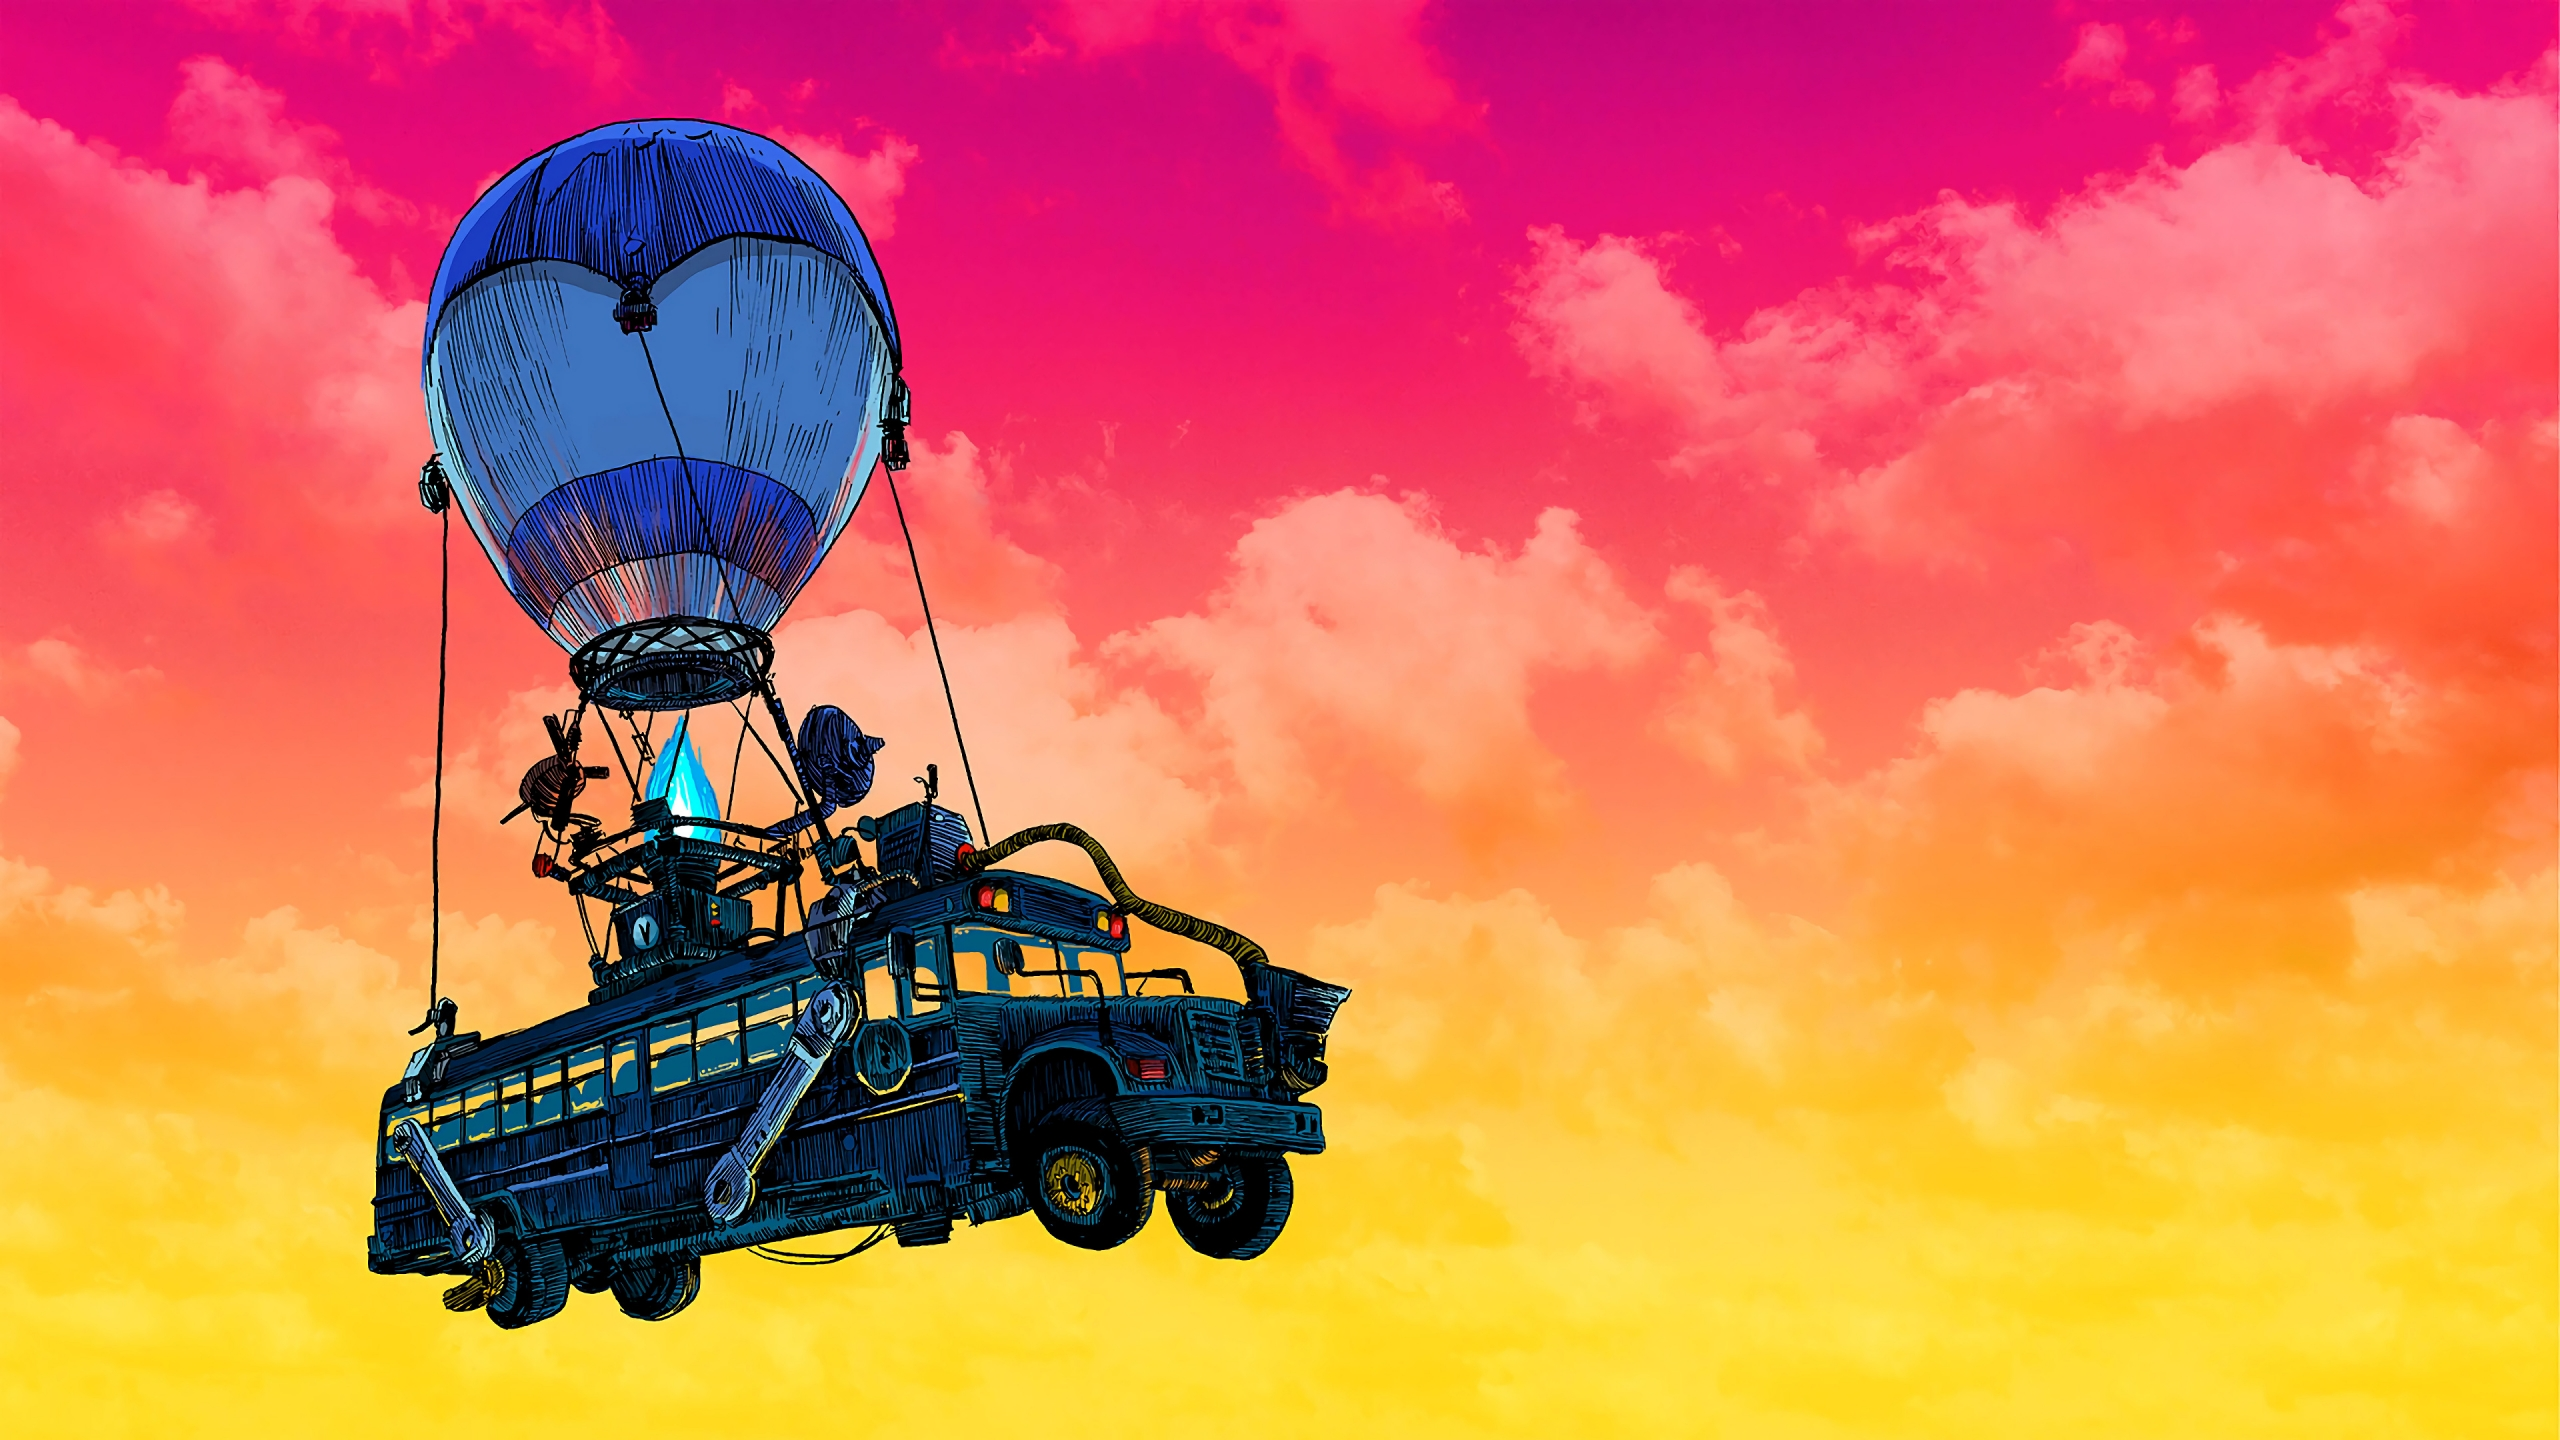 Fortnite Battle Bus Wallpaper 4k Ultra Hd Id 3760